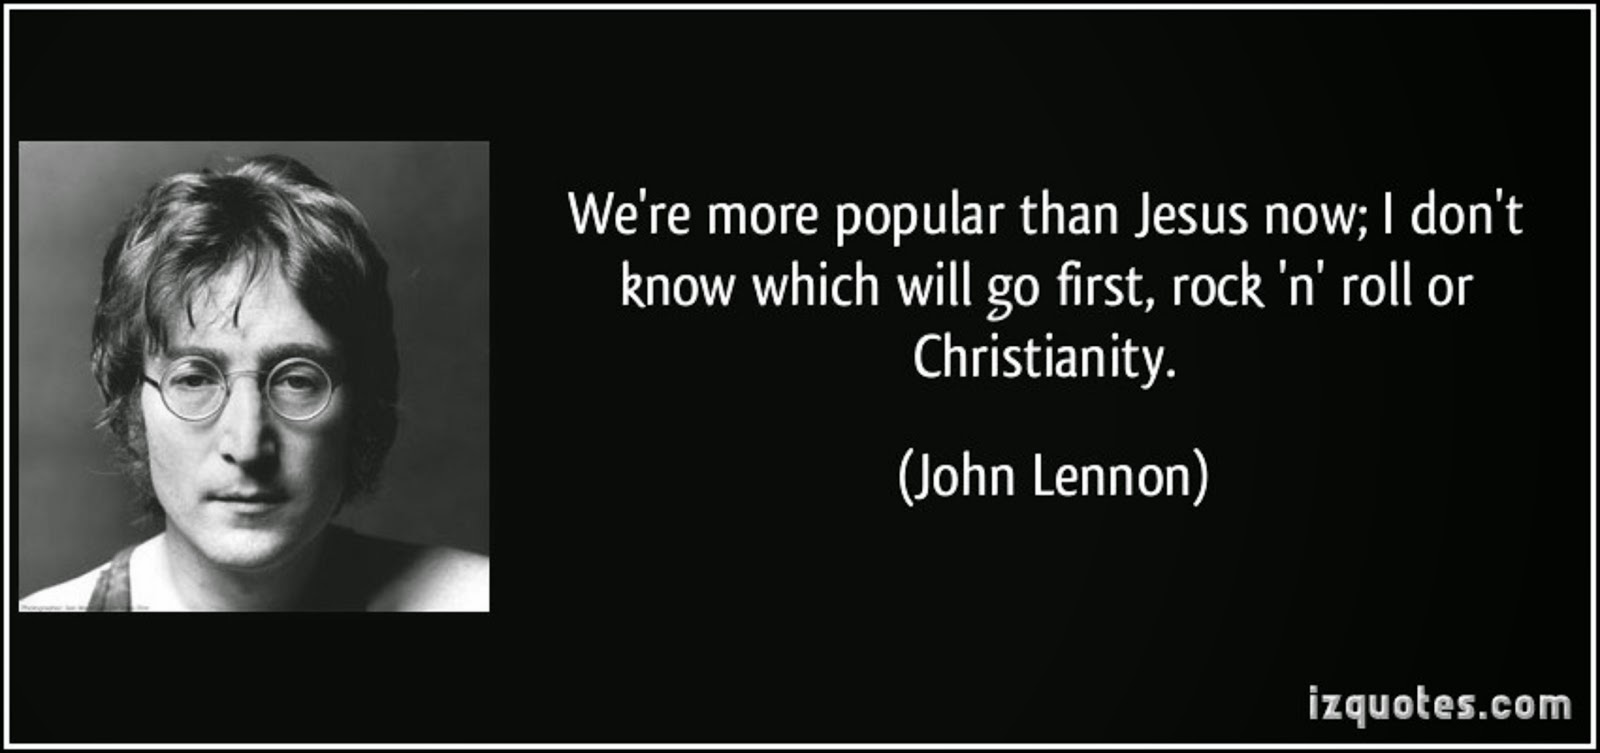 JOHN LENNON BOASTS THAT THE BEATLES ARE GREATER THAN JESUS